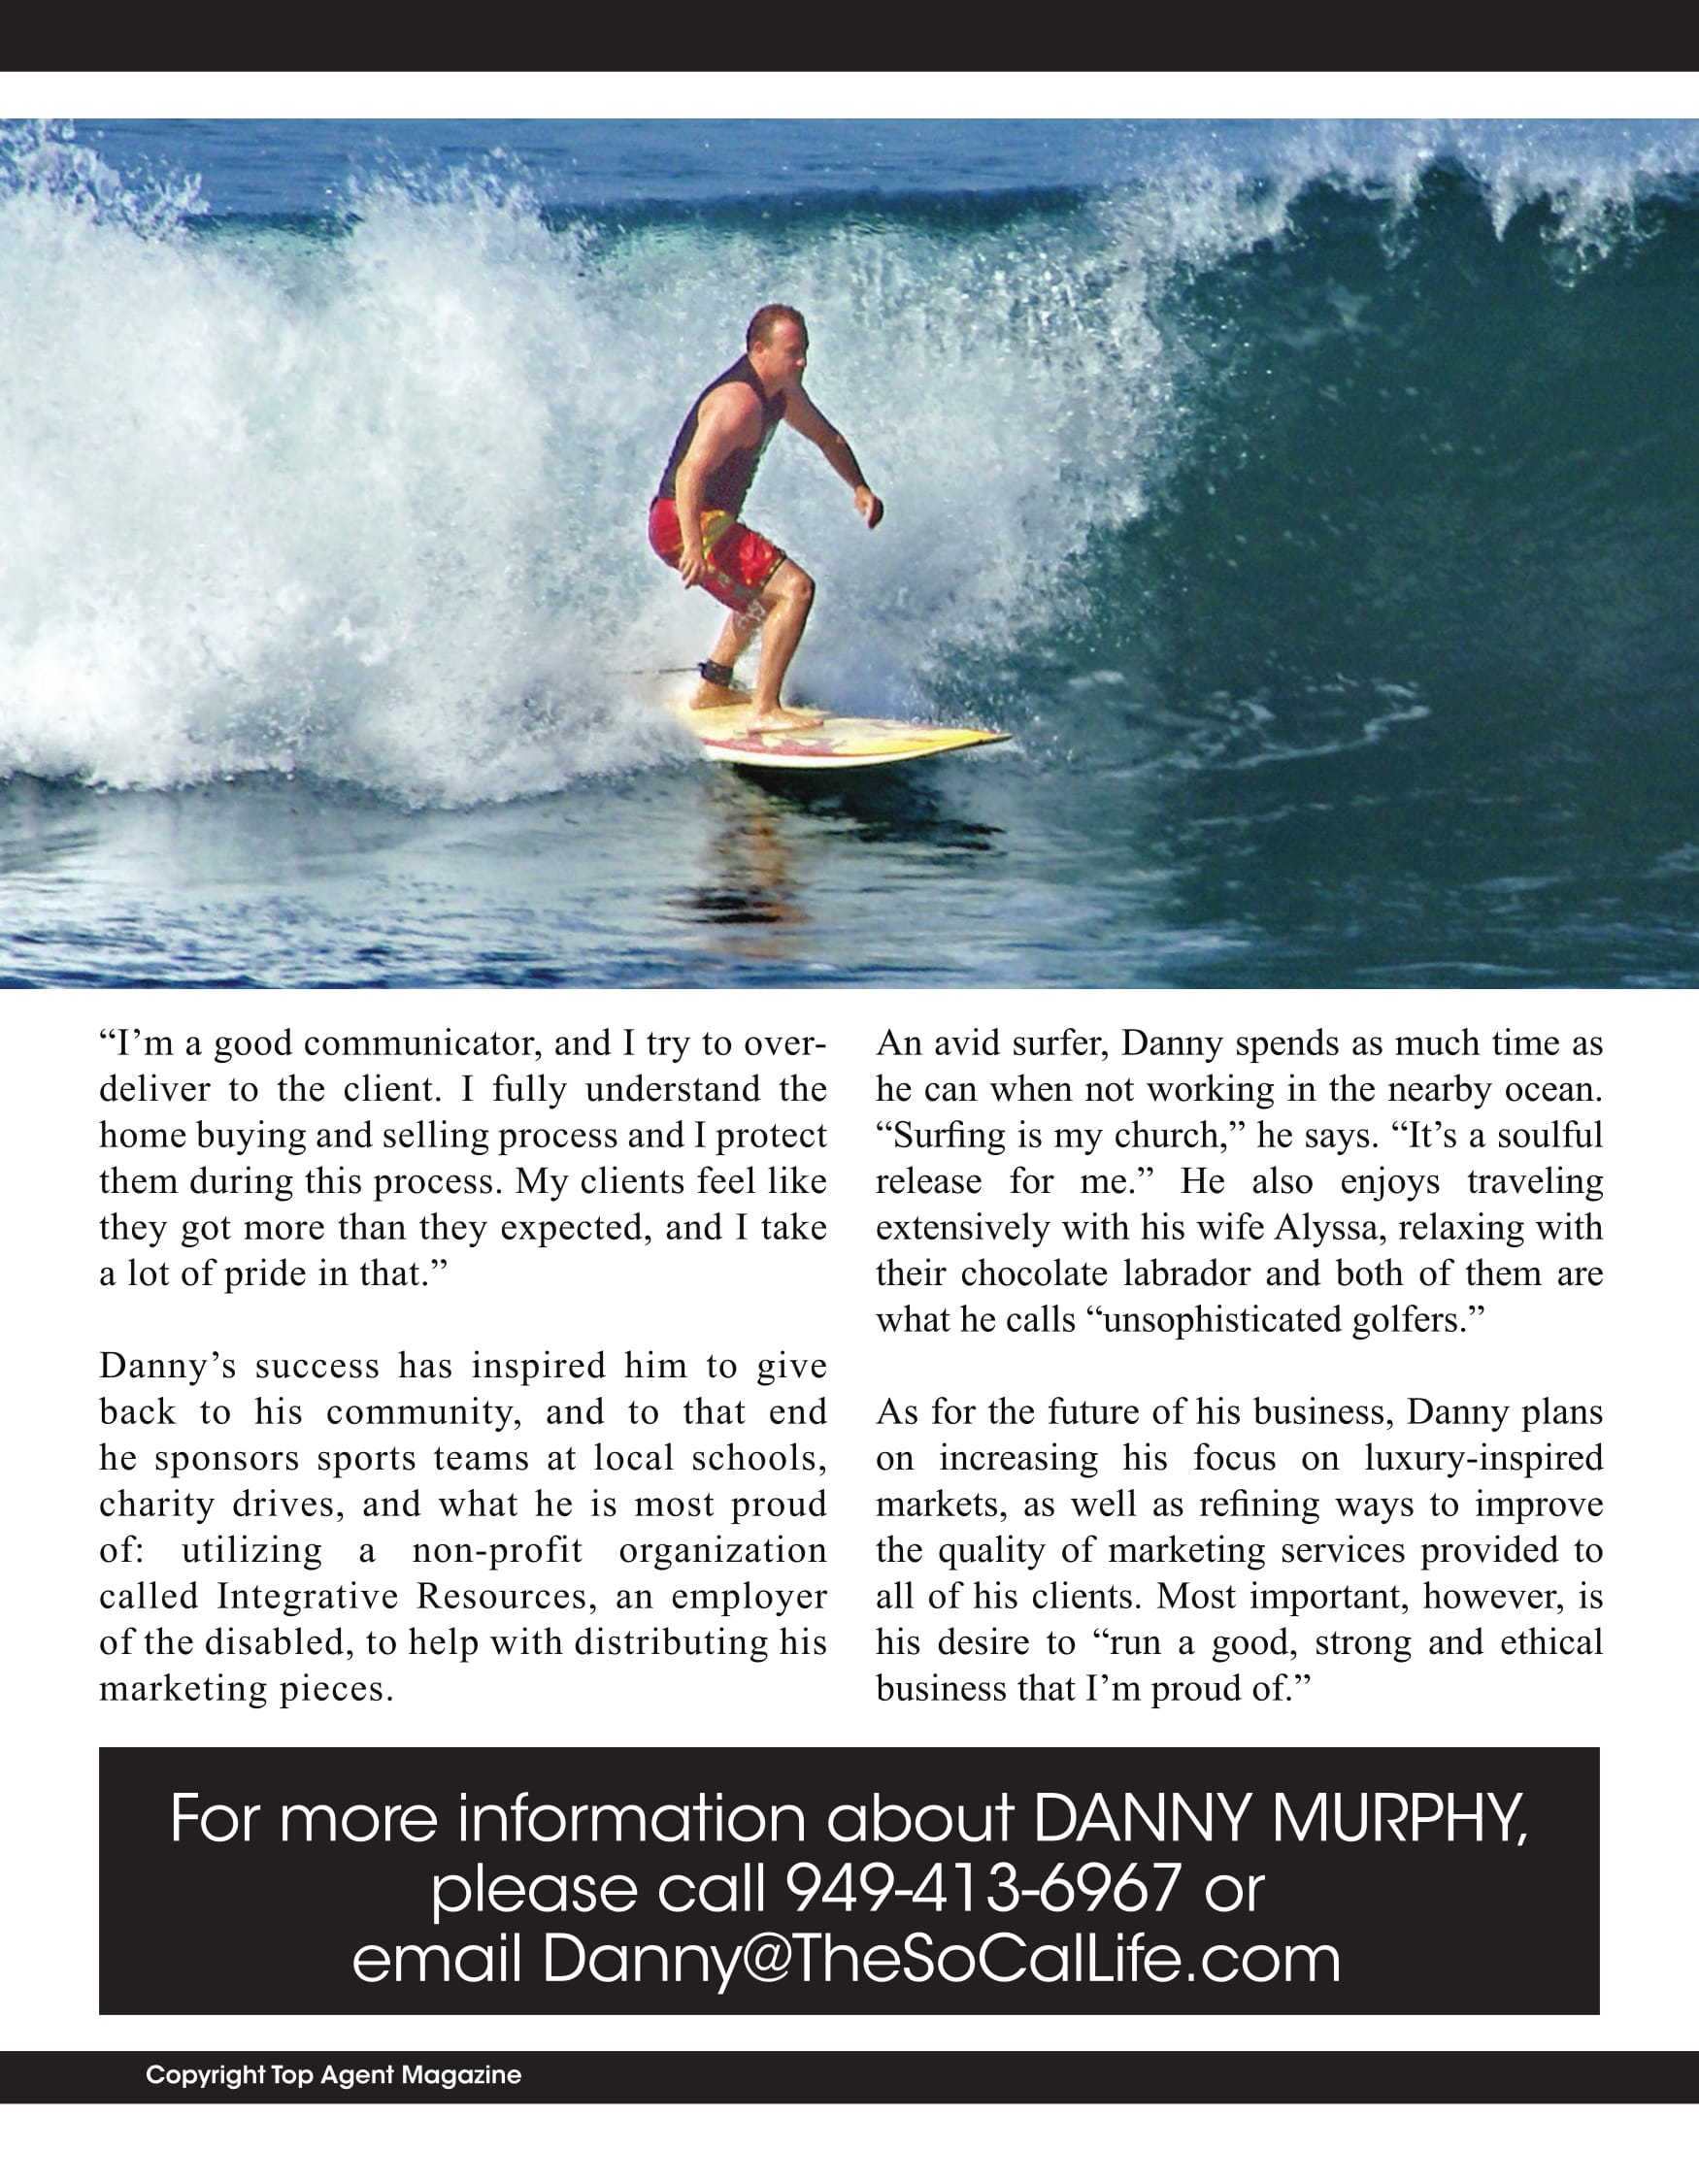 Top Agent Magazine article about Danny Murphy & Associates, top realtor in Newport Beach, Ca